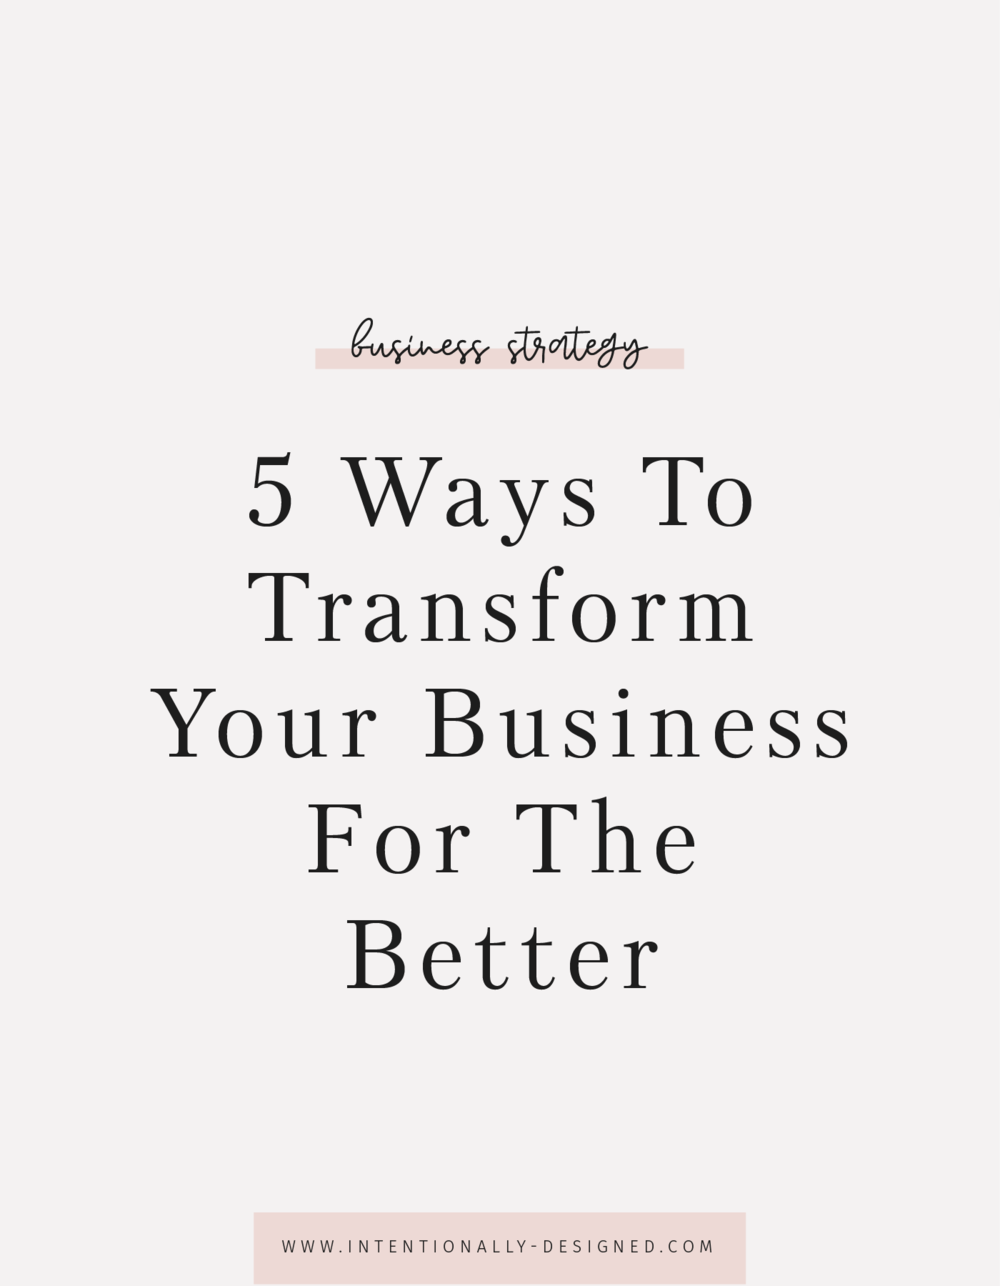 5 Ways To Transform Your Business For The Better